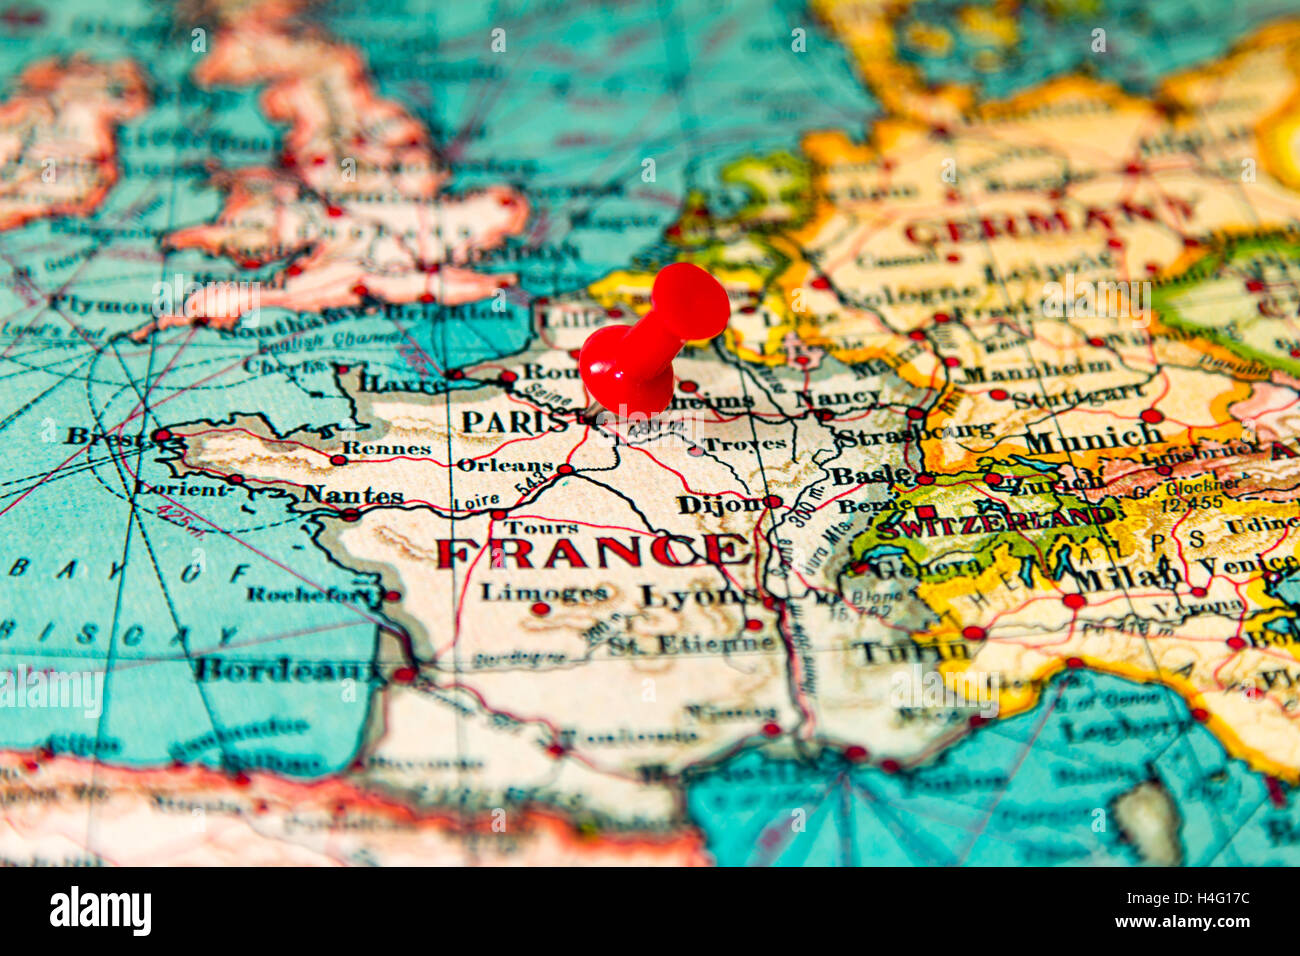 Paris Europe Map.Paris France Pinned On Vintage Map Of Europe Stock Photo 123283424